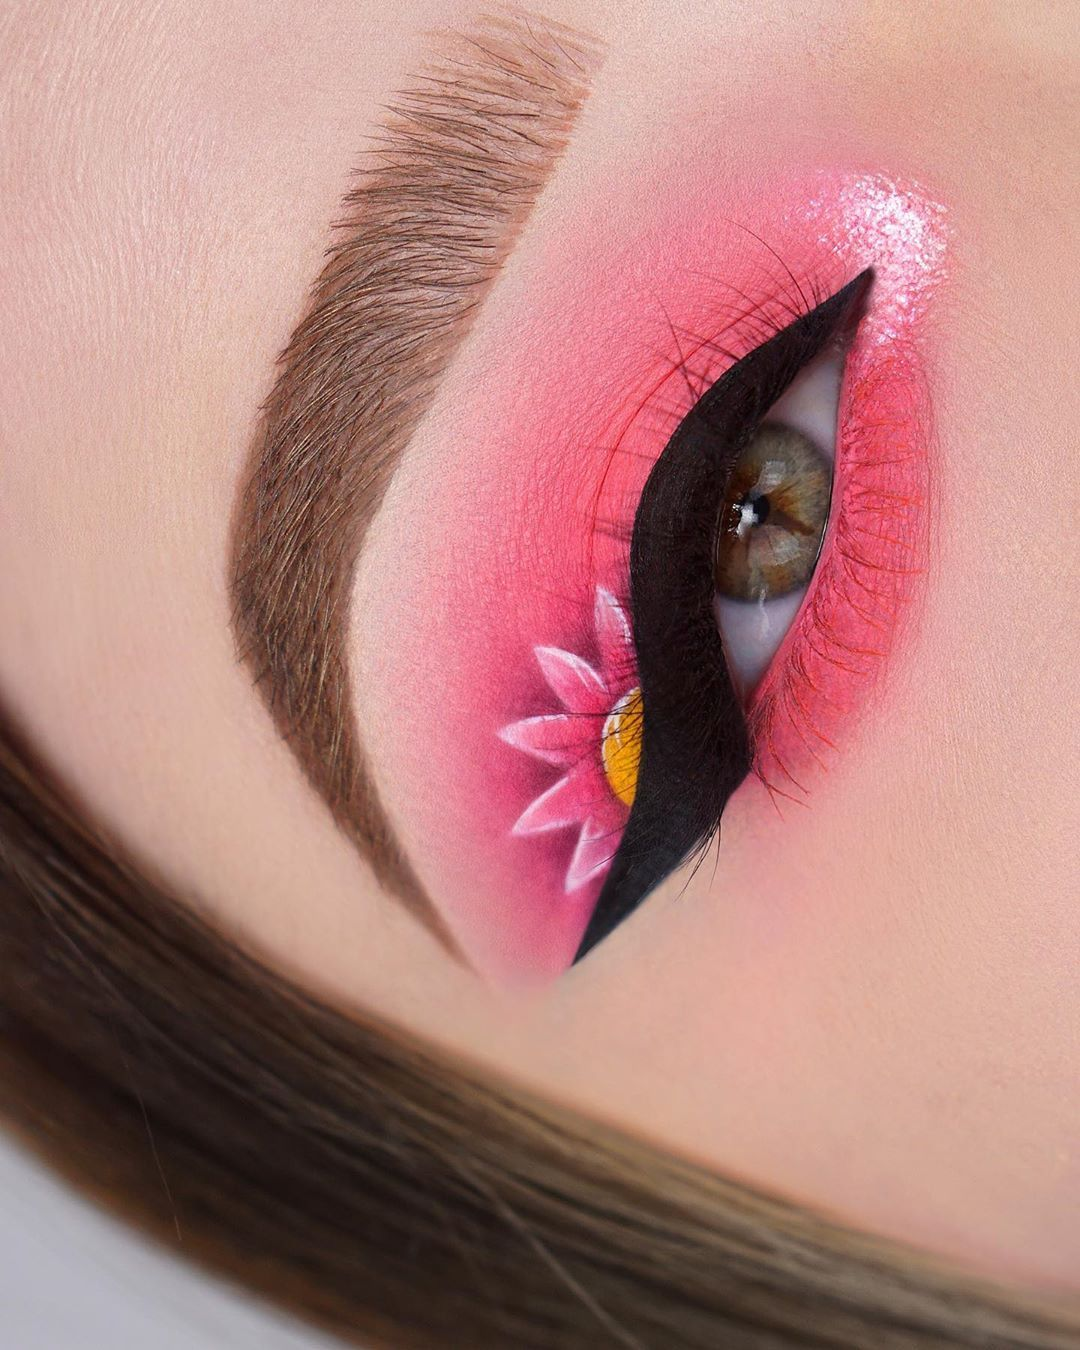 Jessica Rose Silicz On Instagram Flower Power Inspired By